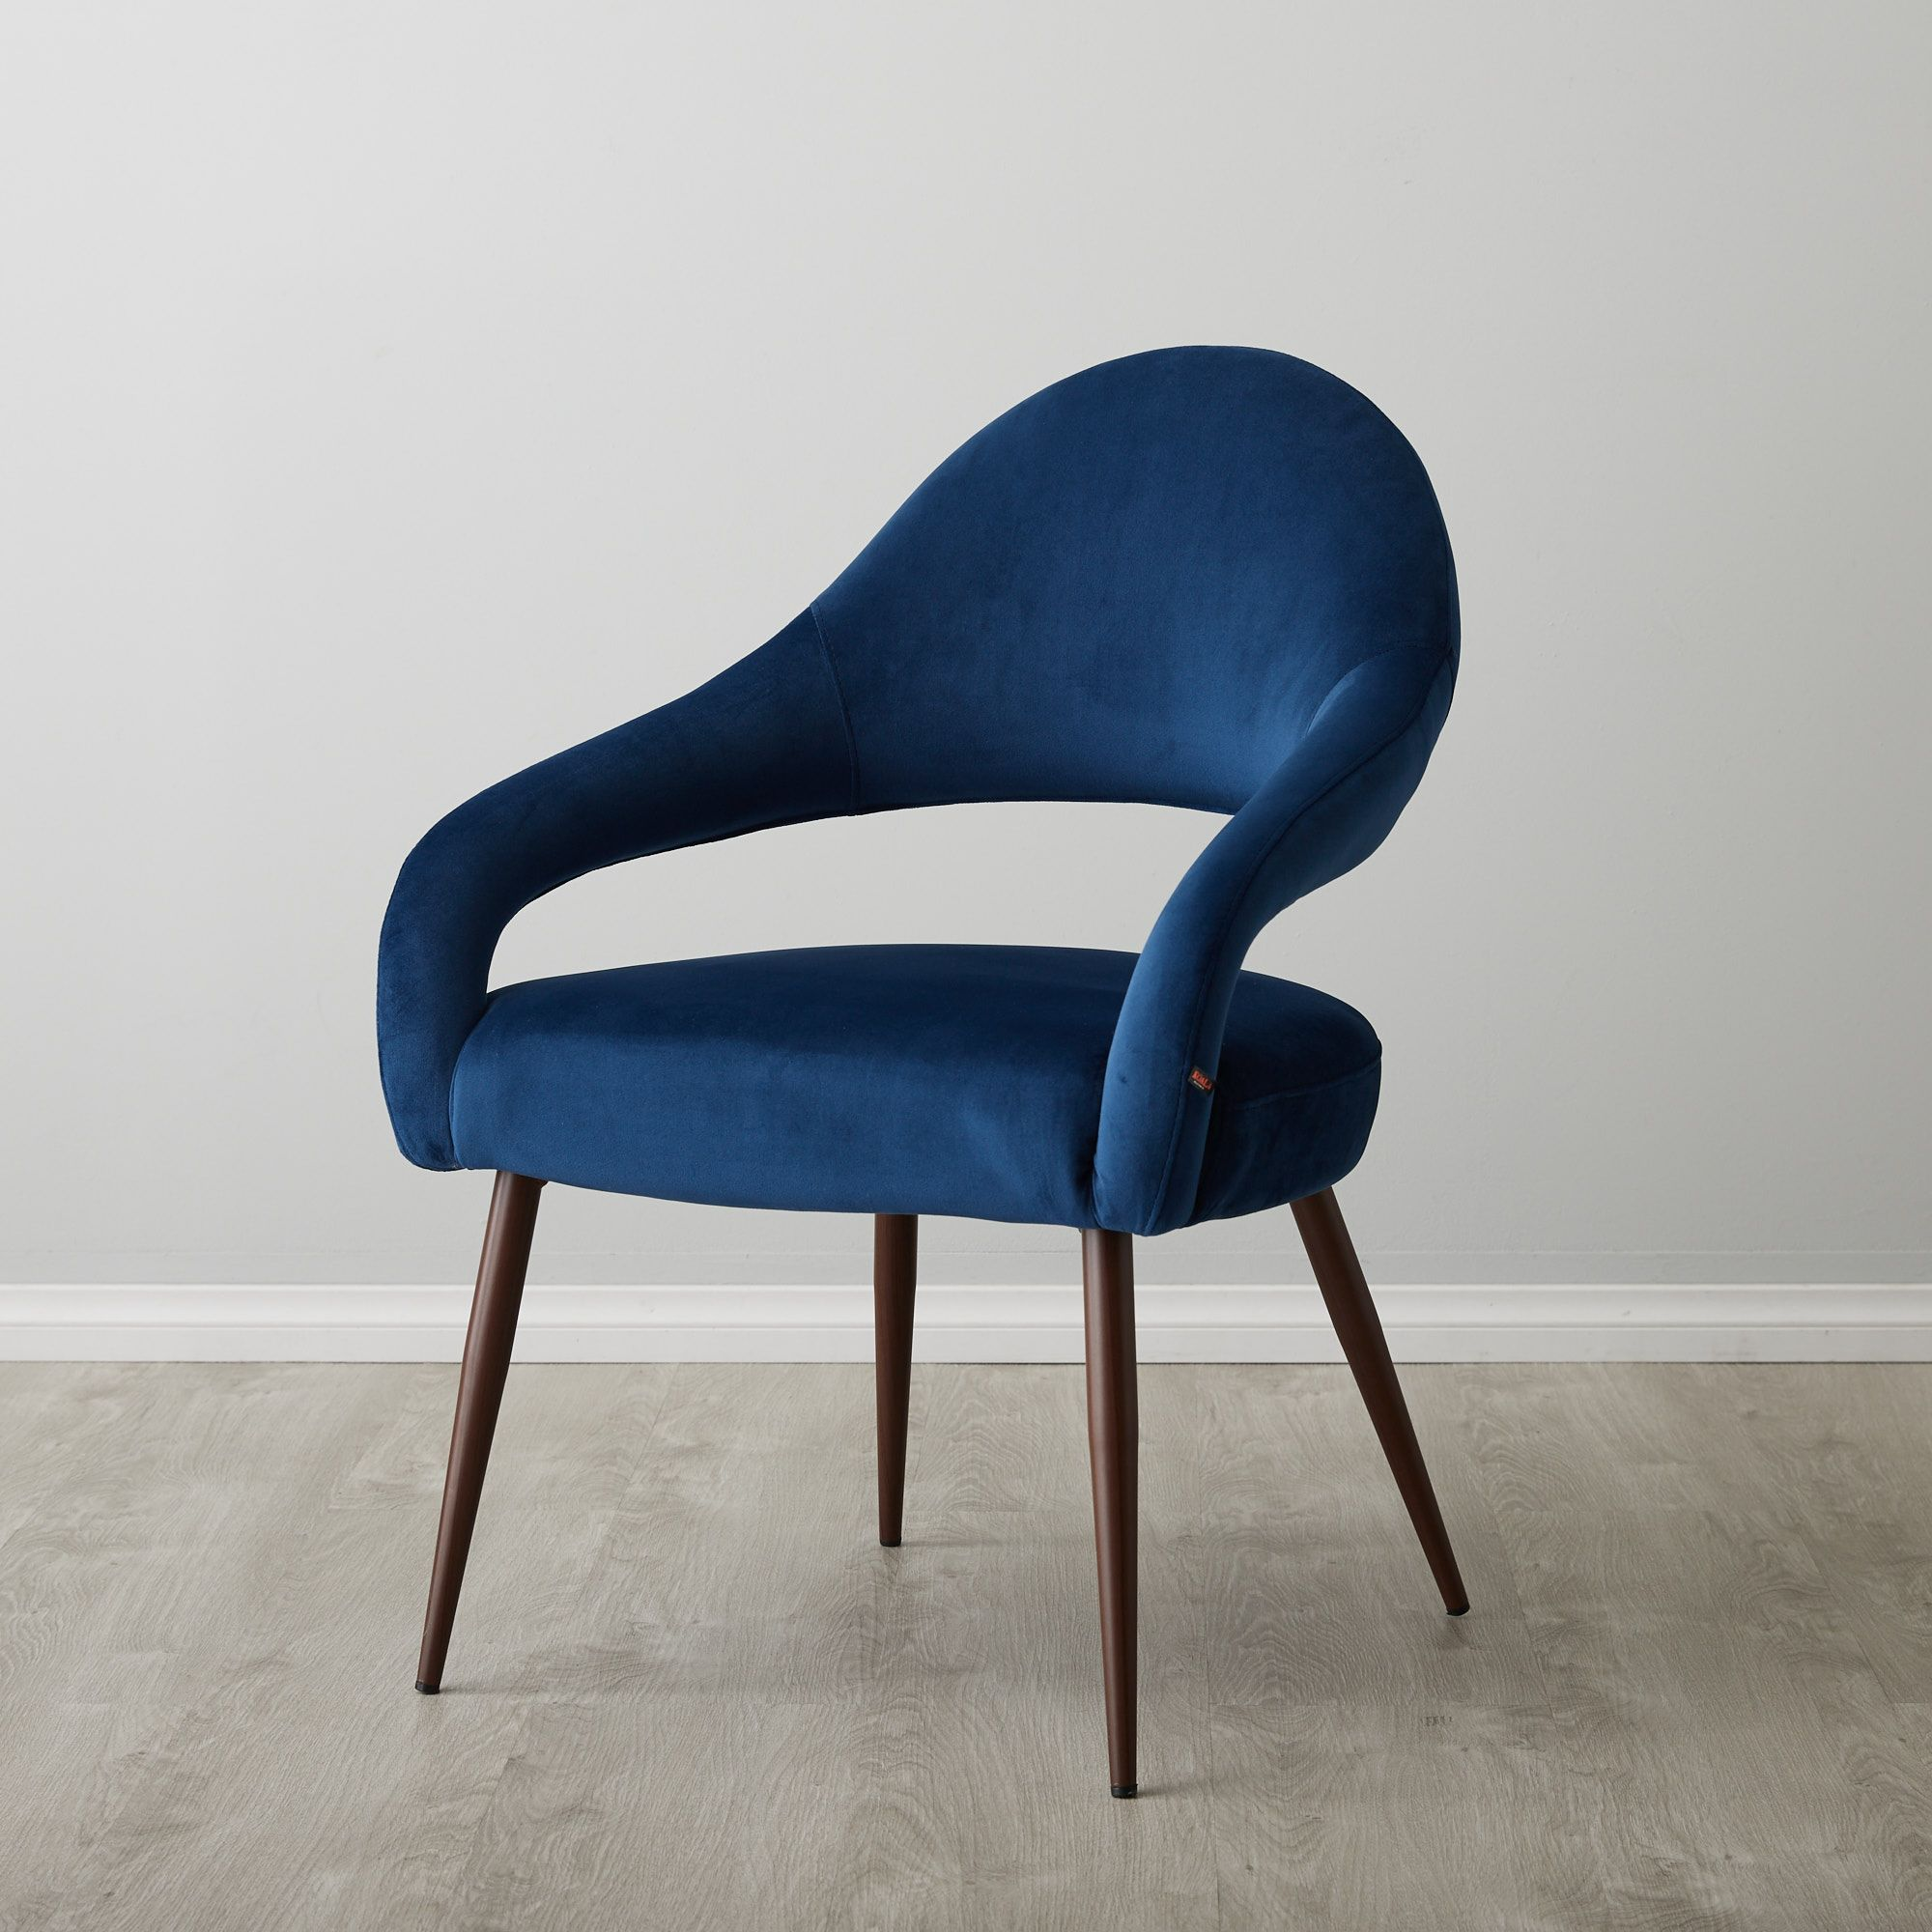 Torq Chair by Koala Living, a Dining Chairs for sale on Style Sourcebook